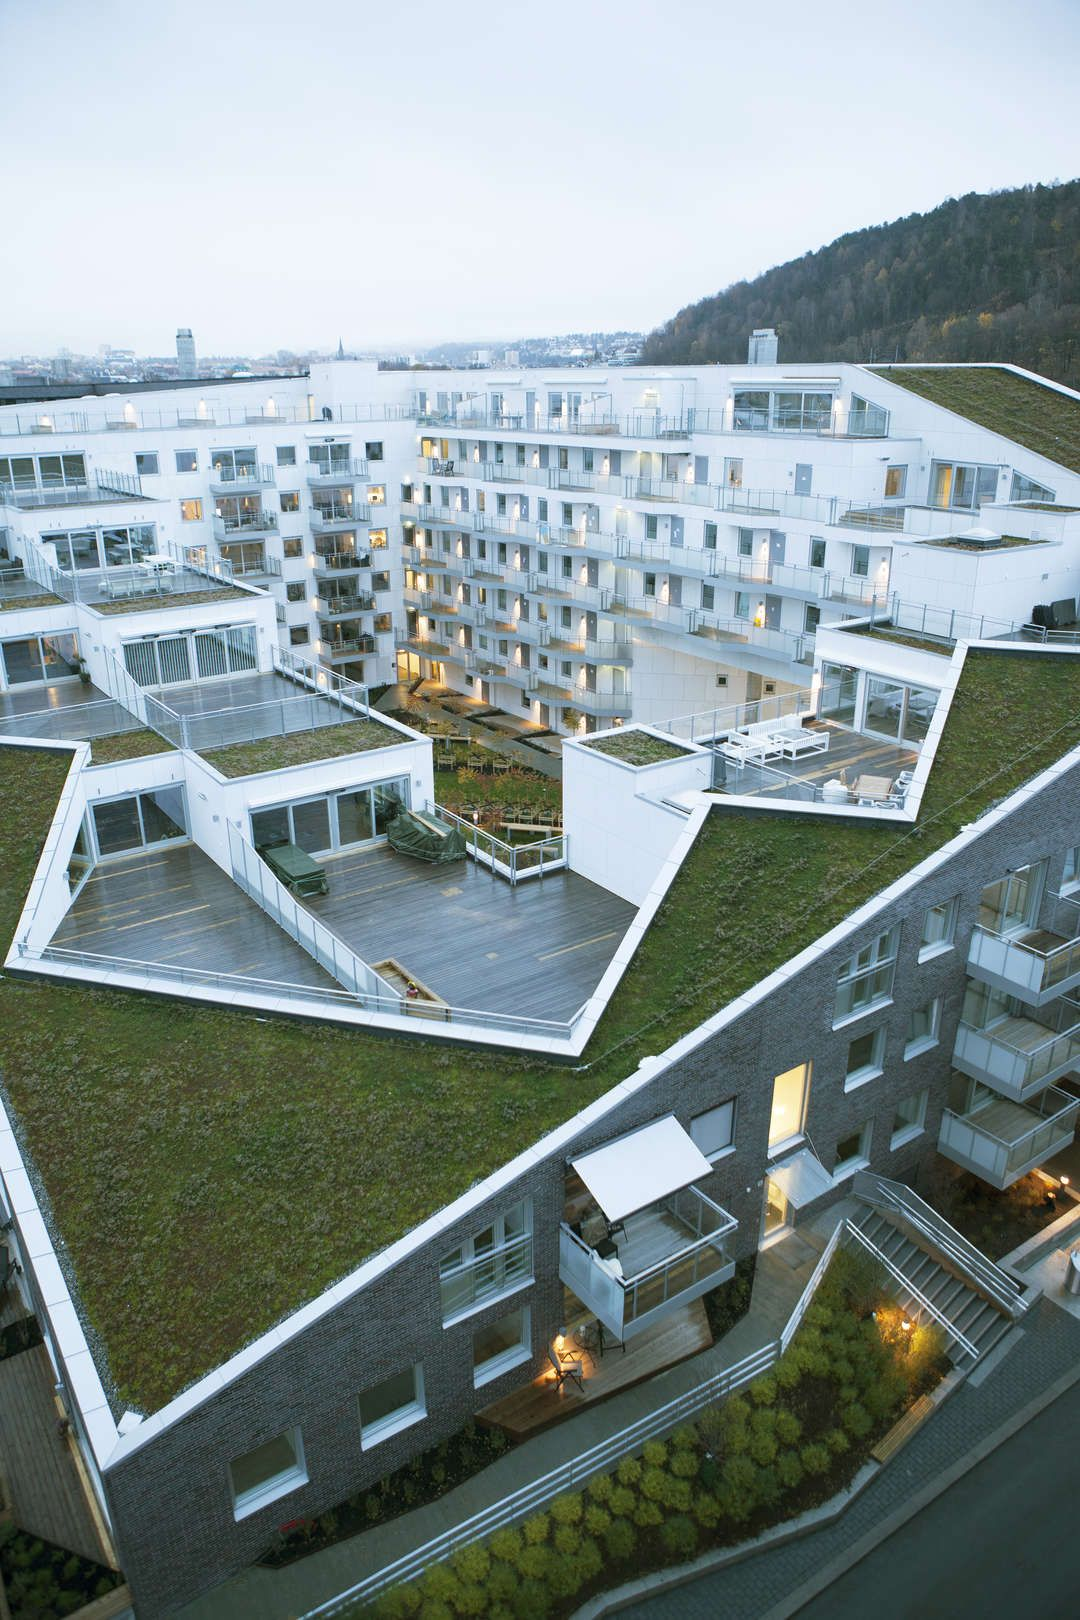 Sørenga Block 6 Is A Residential With 110 Flats And Semi Public Green Courtyard Two Large Diagonally Aligned Passages Cut Through The To